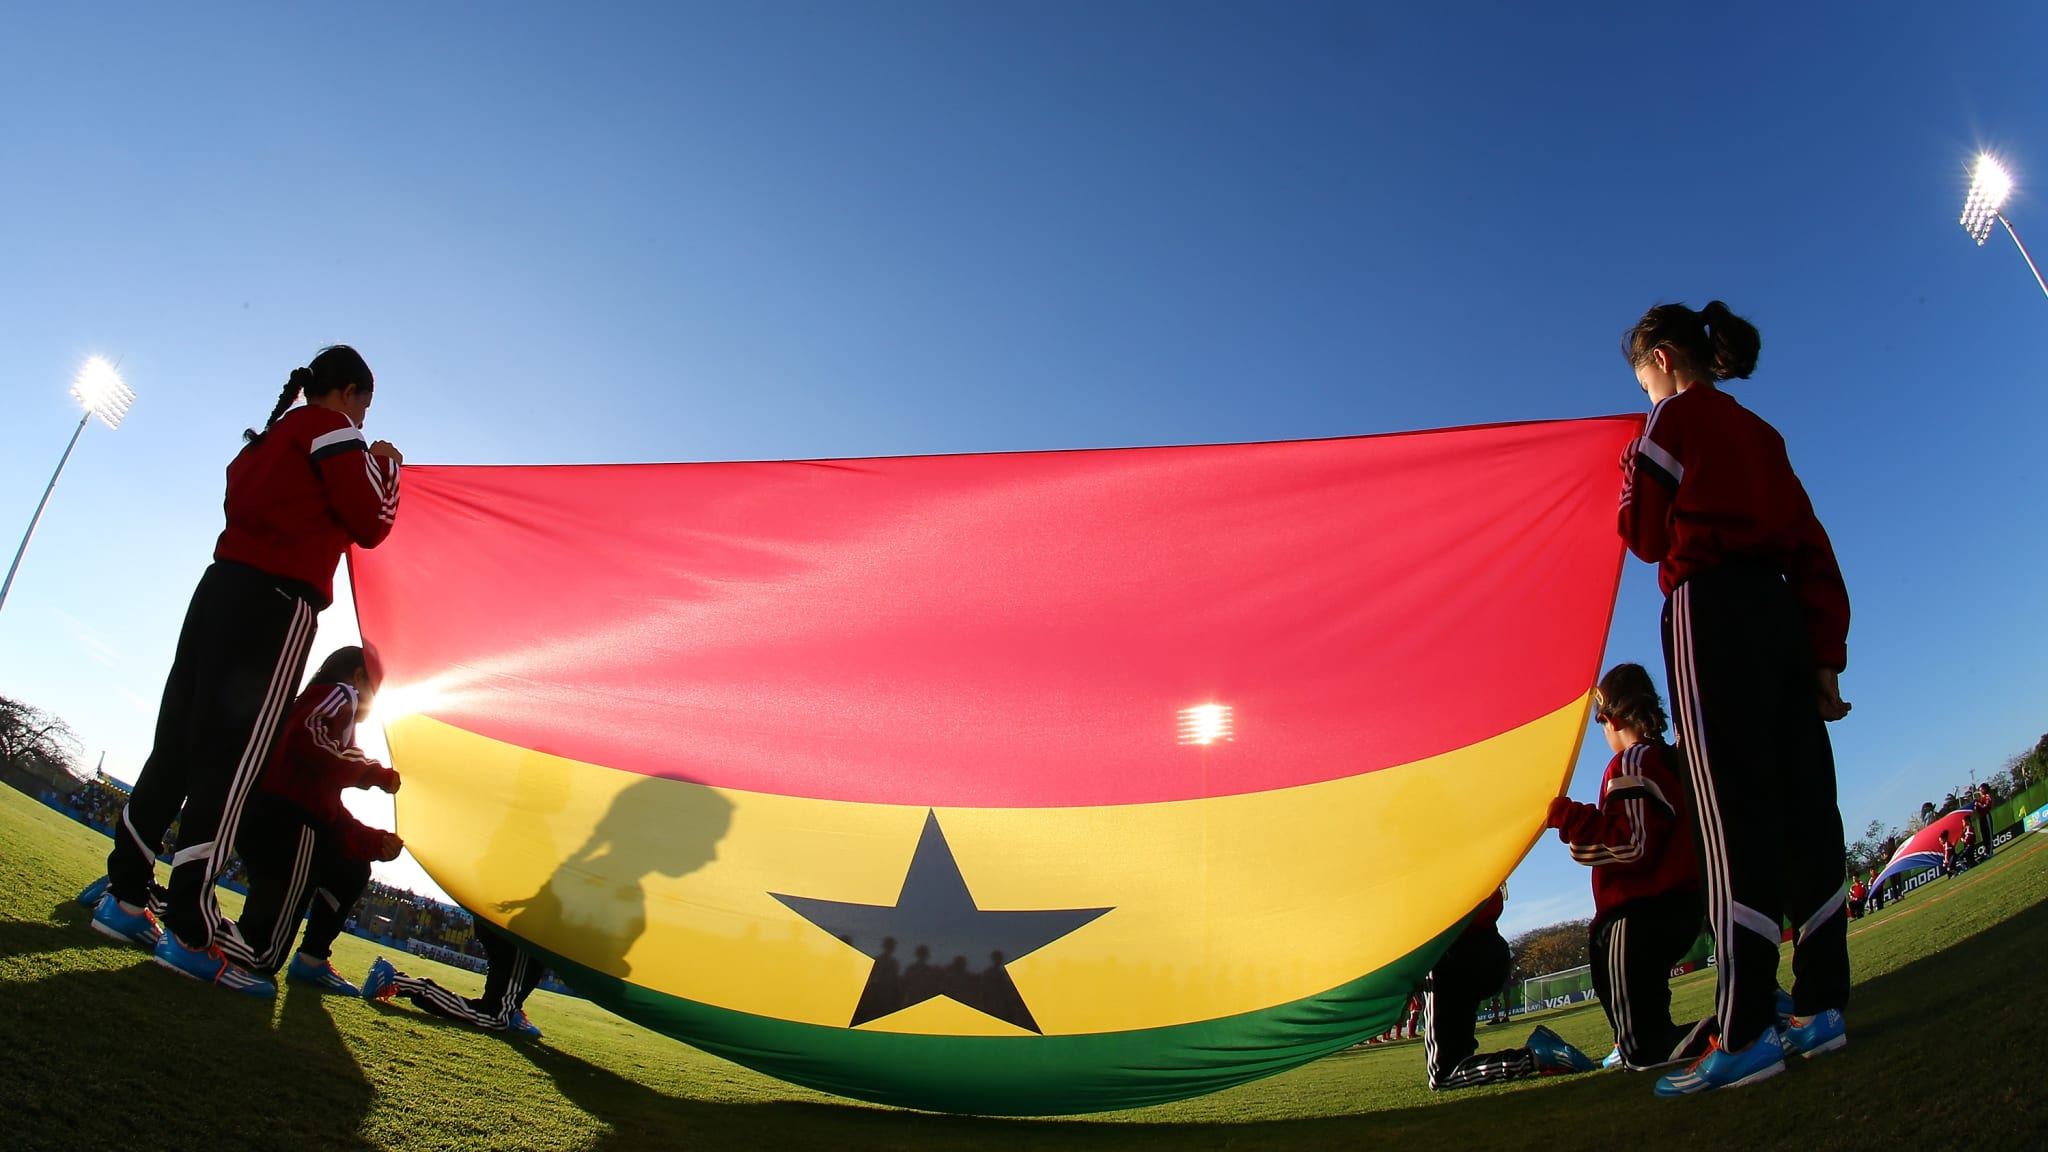 The flag of Ghana is seen before the FIFA U-17 Women's World Cup 2014 group B match between Ghana and Korea DPR.